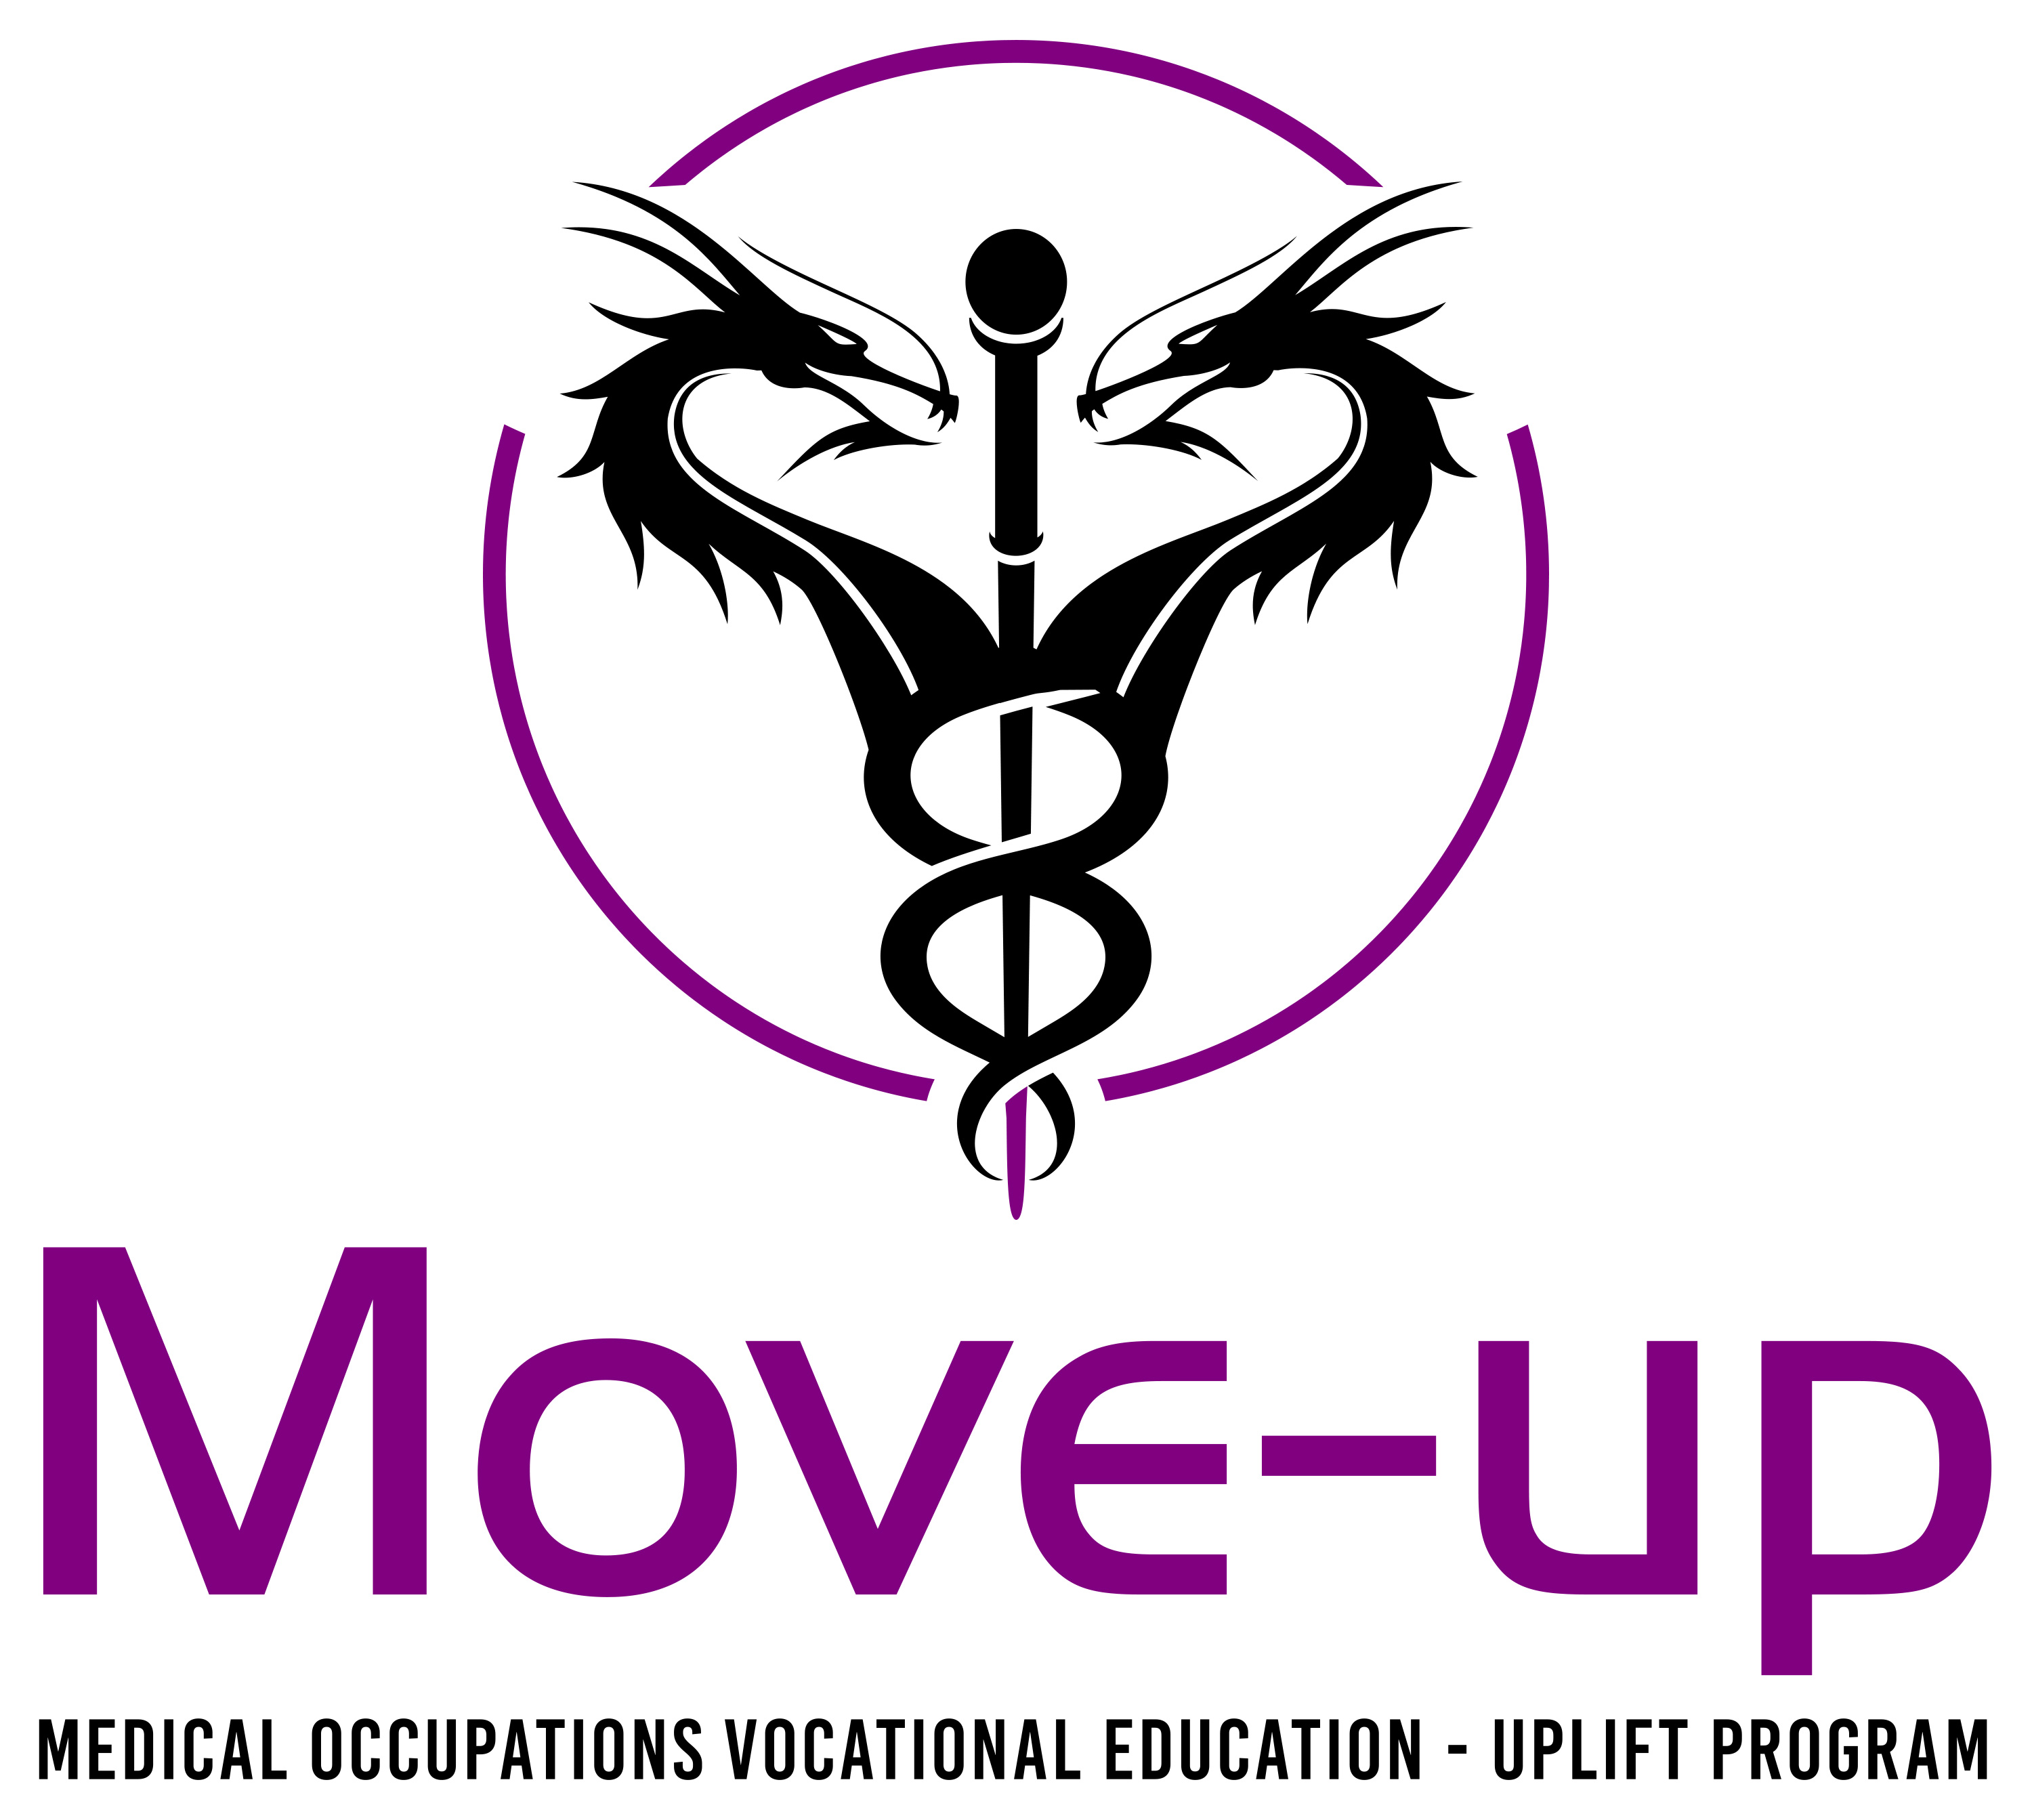 Medical Occupations Vocational Education Uplift Program